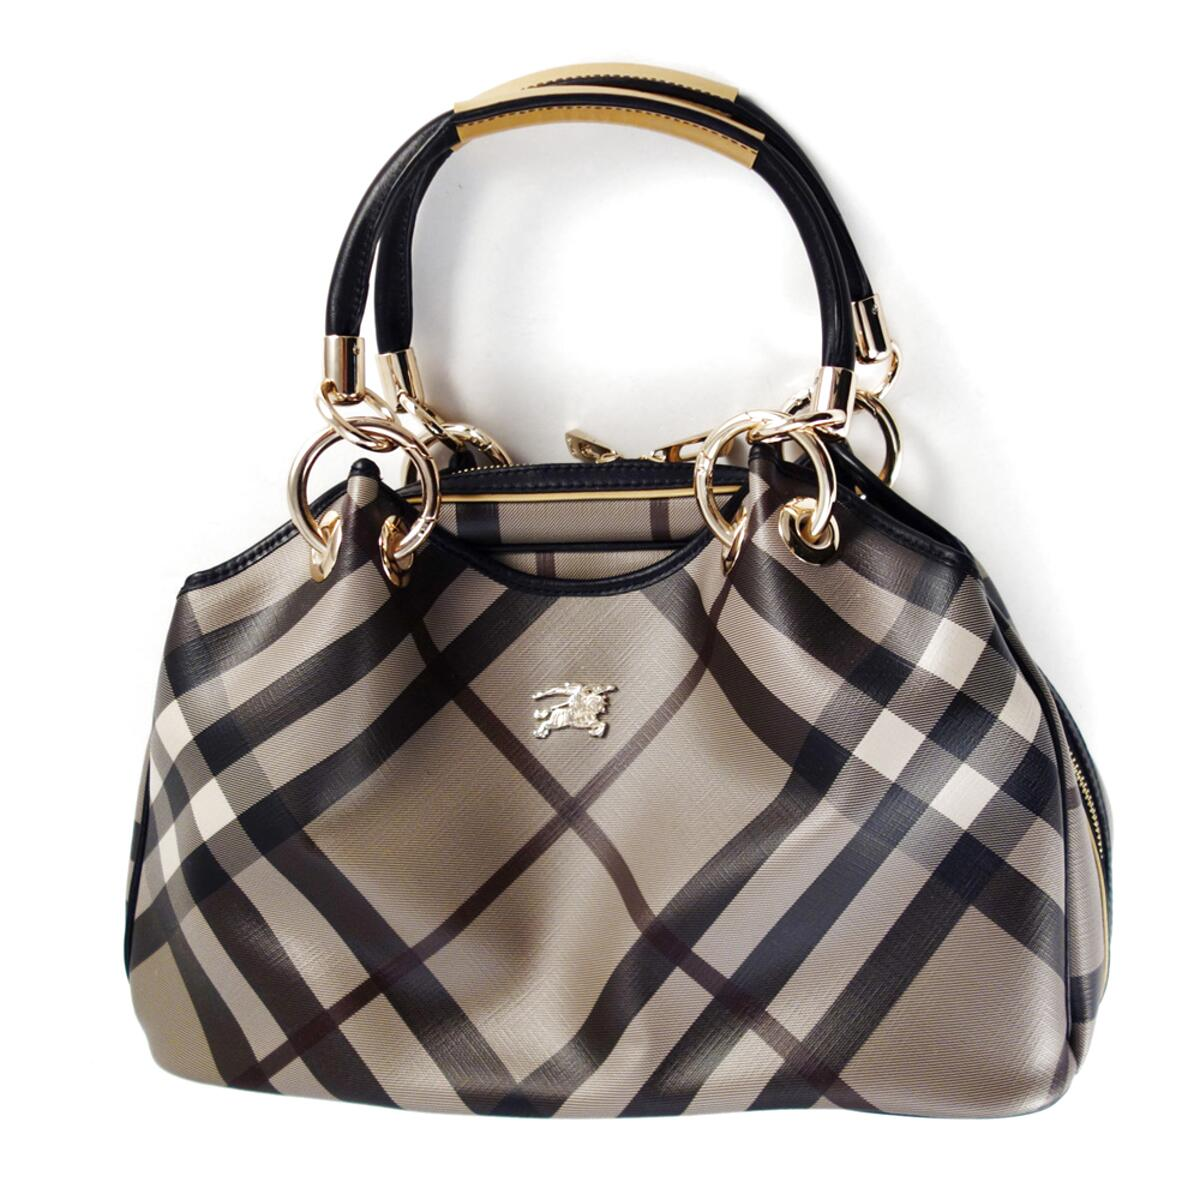 Burberry Bag for sale in UK | 92 used Burberry Bags